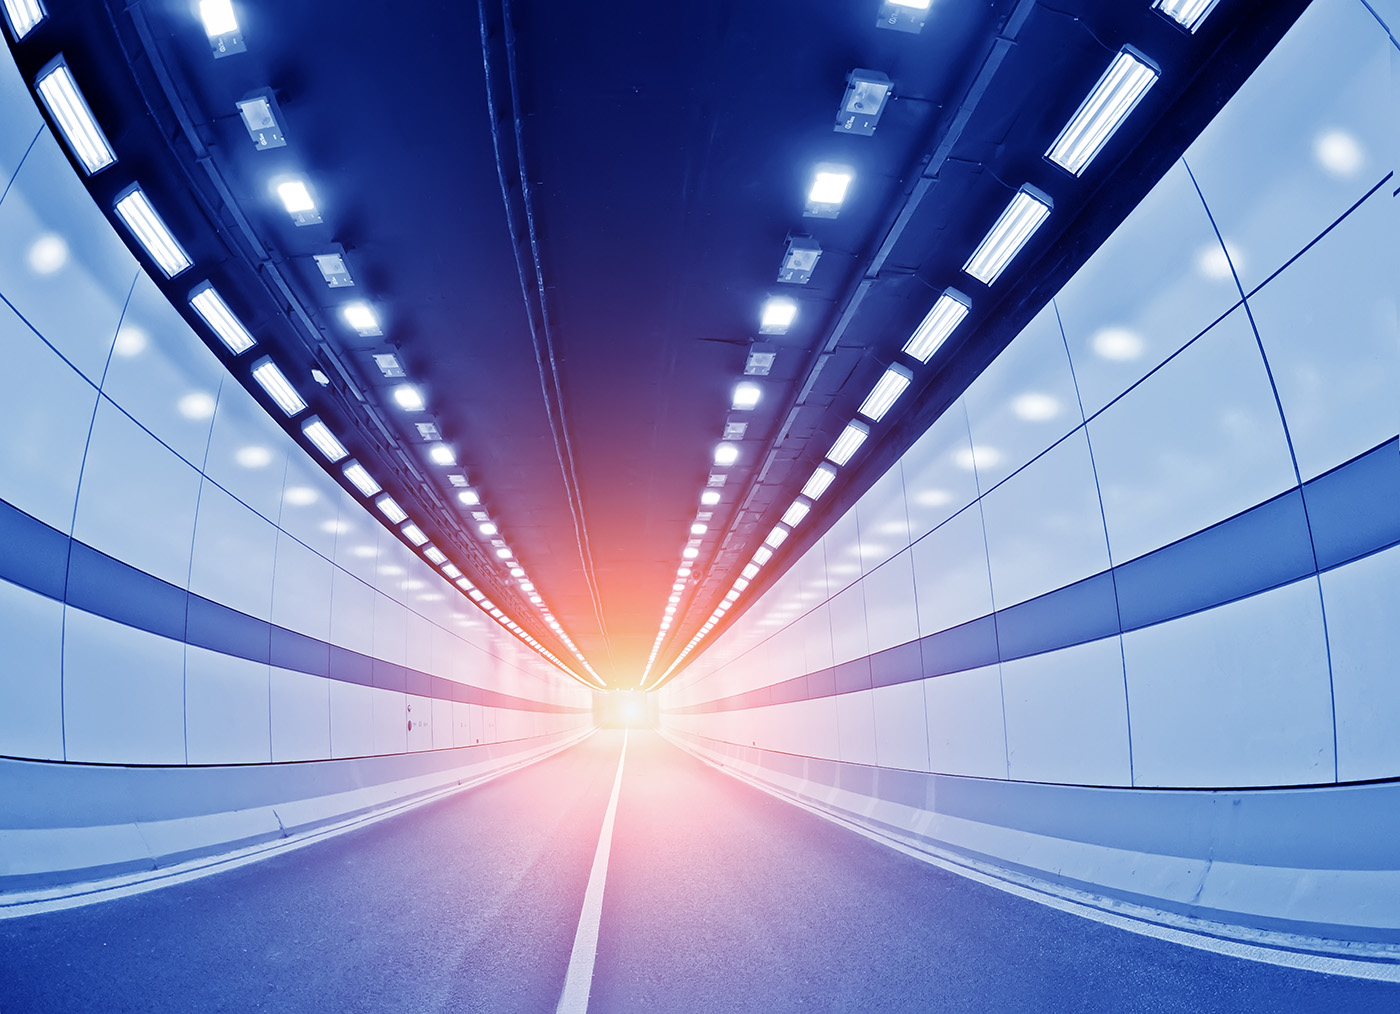 Underground Tunnel Road dazzling lights 50234